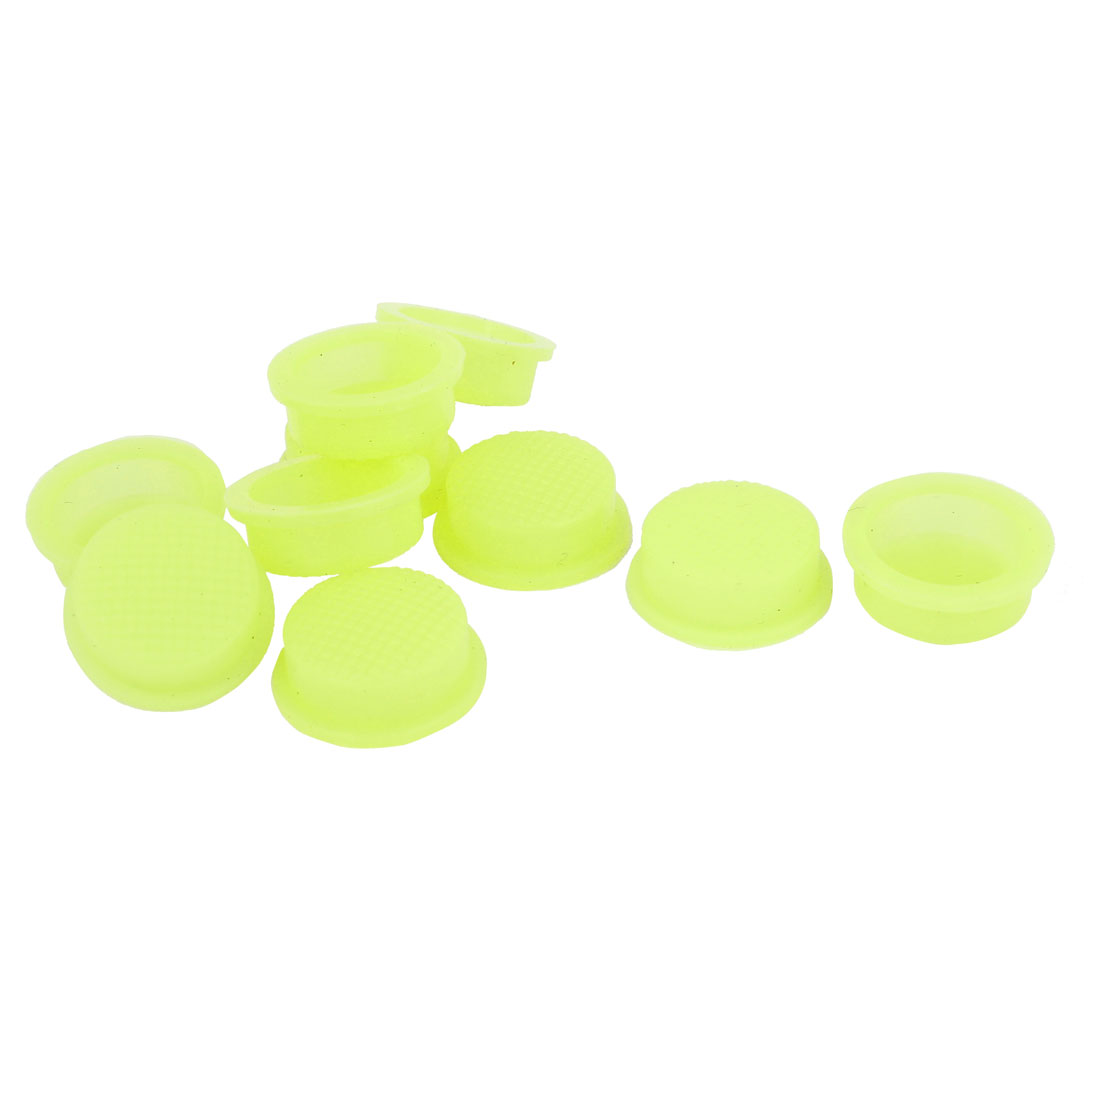 10 Pcs Silicone Waterproof Cover Guard Protector Yellow for 13mm Dia Head Switch